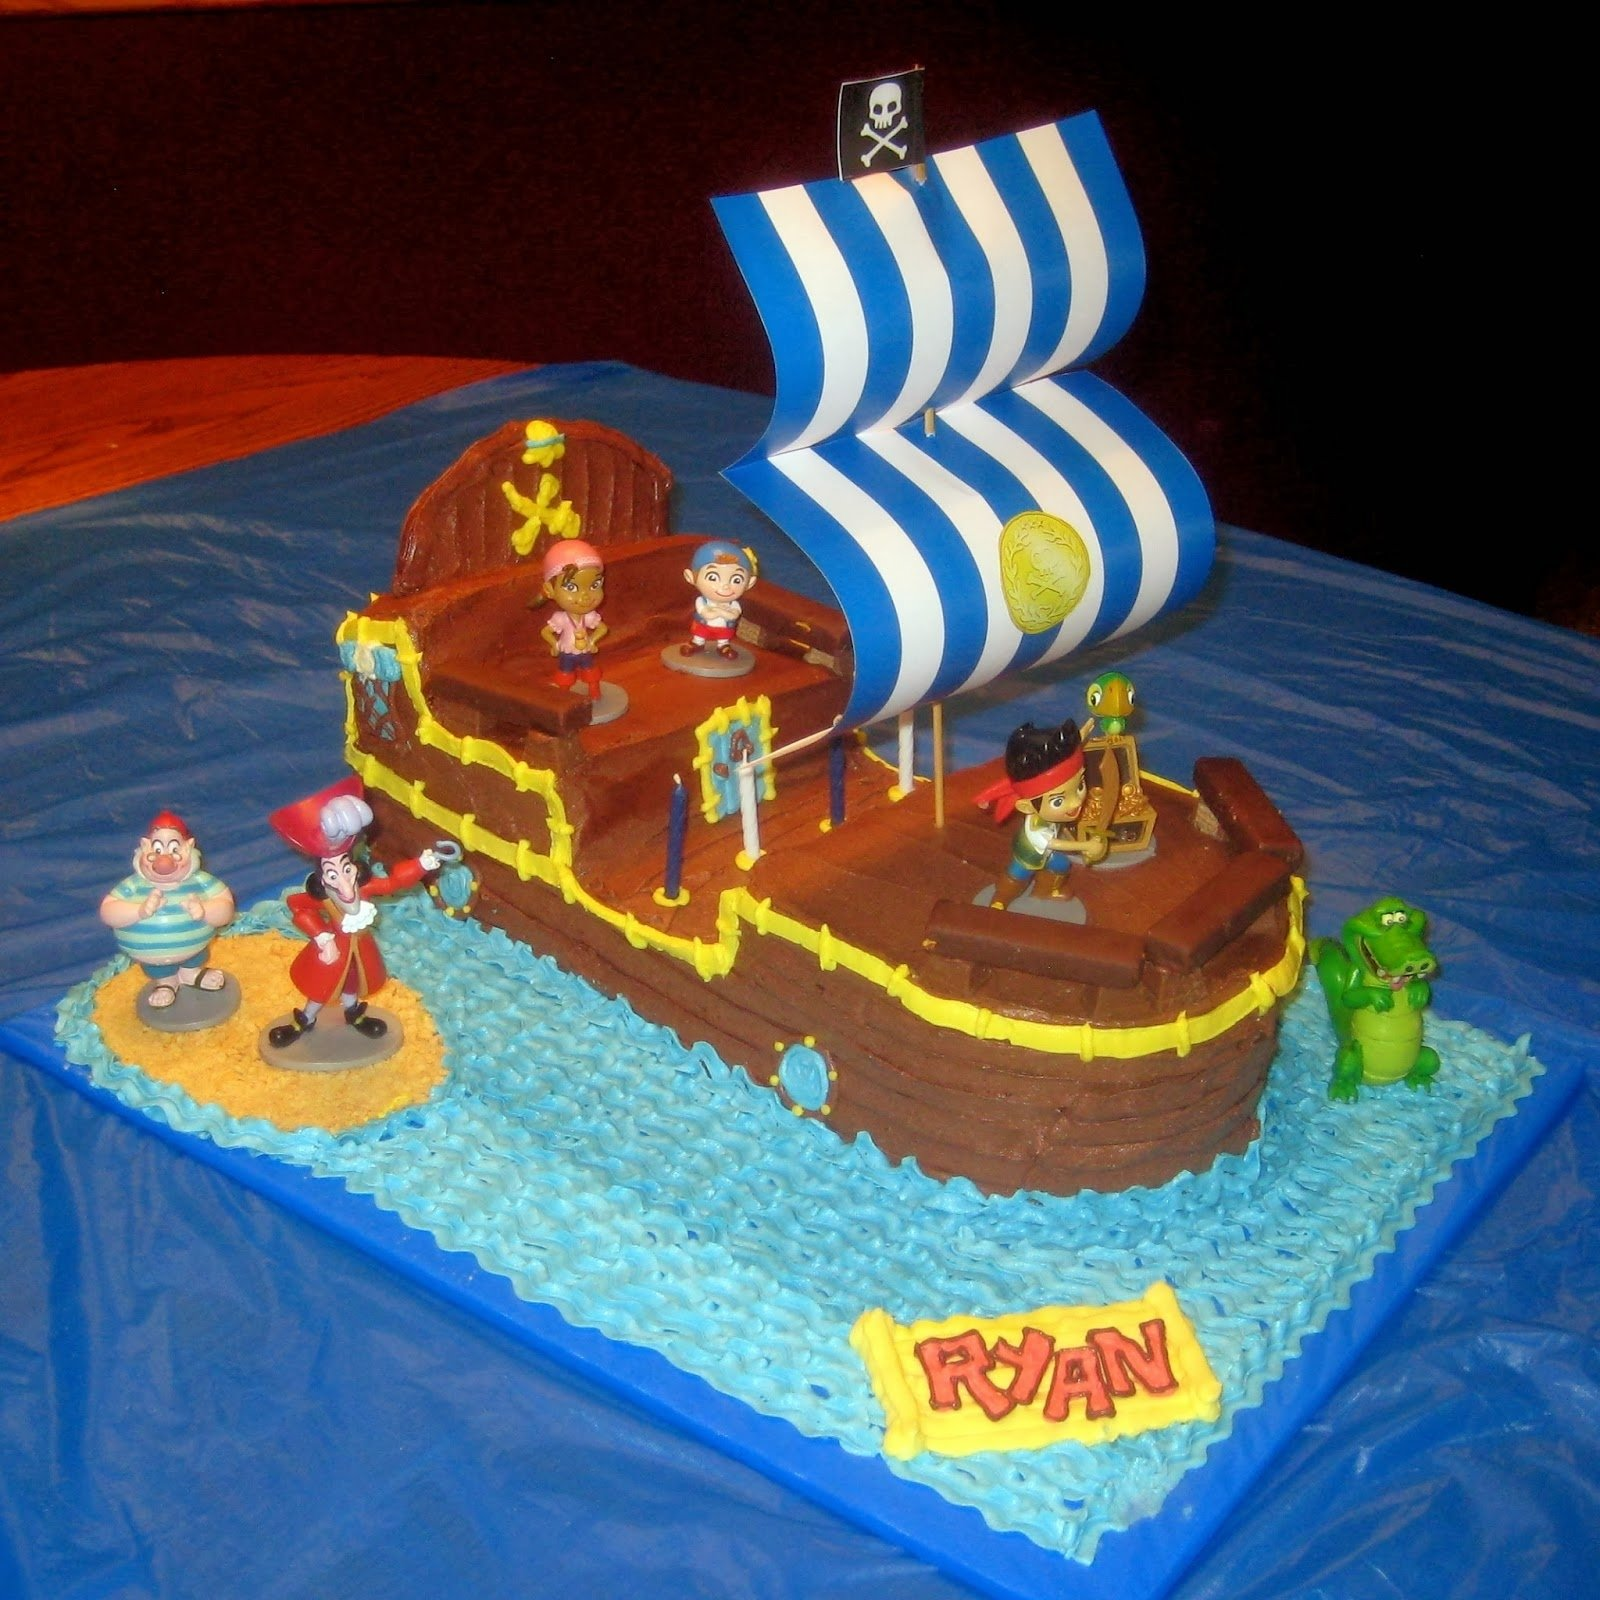 10 Lovable Jake And The Neverland Pirates Cake Ideas cobo bucky the pirate ship cake jake and the neverland pirates 2021